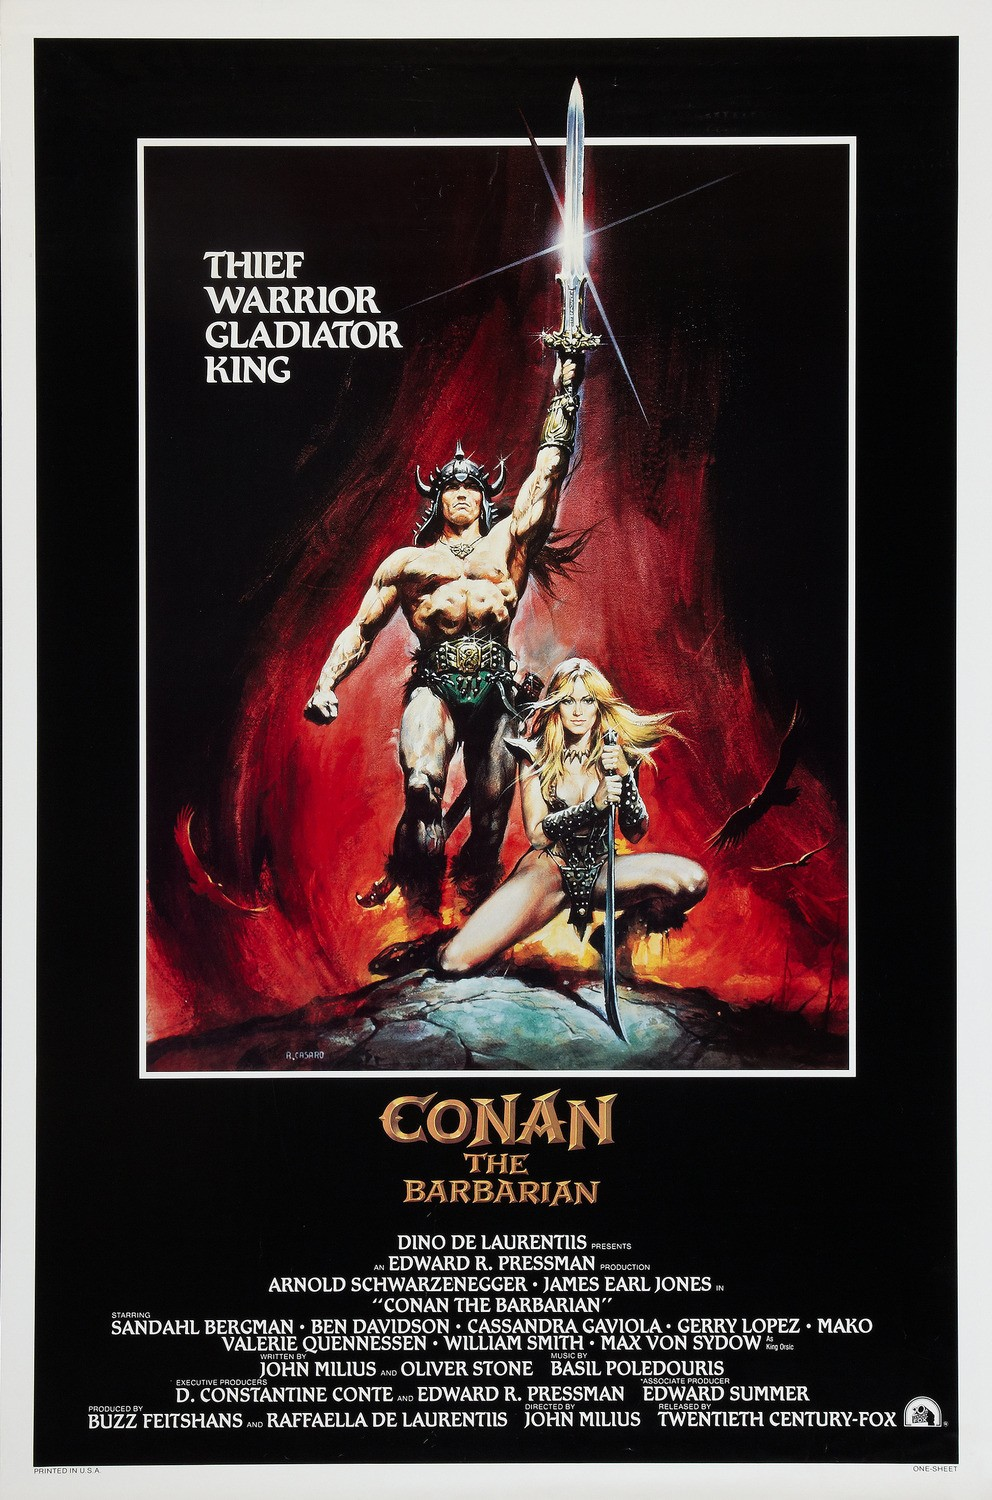 CONAN THE BARBARIAN [1982]